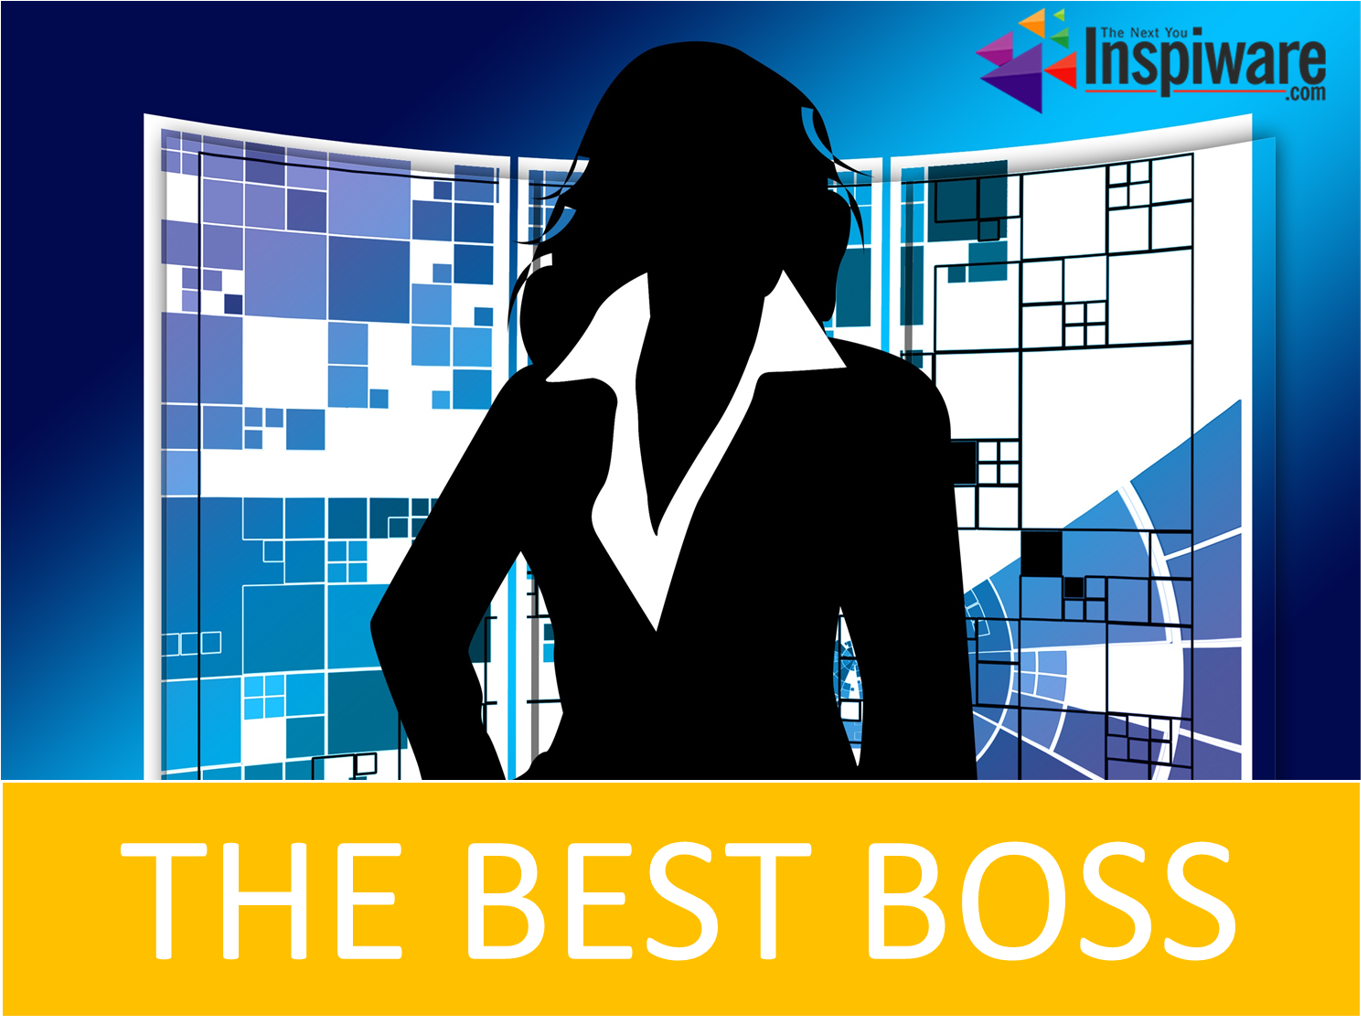 The Best Boss: Be a good boss and boost your own career